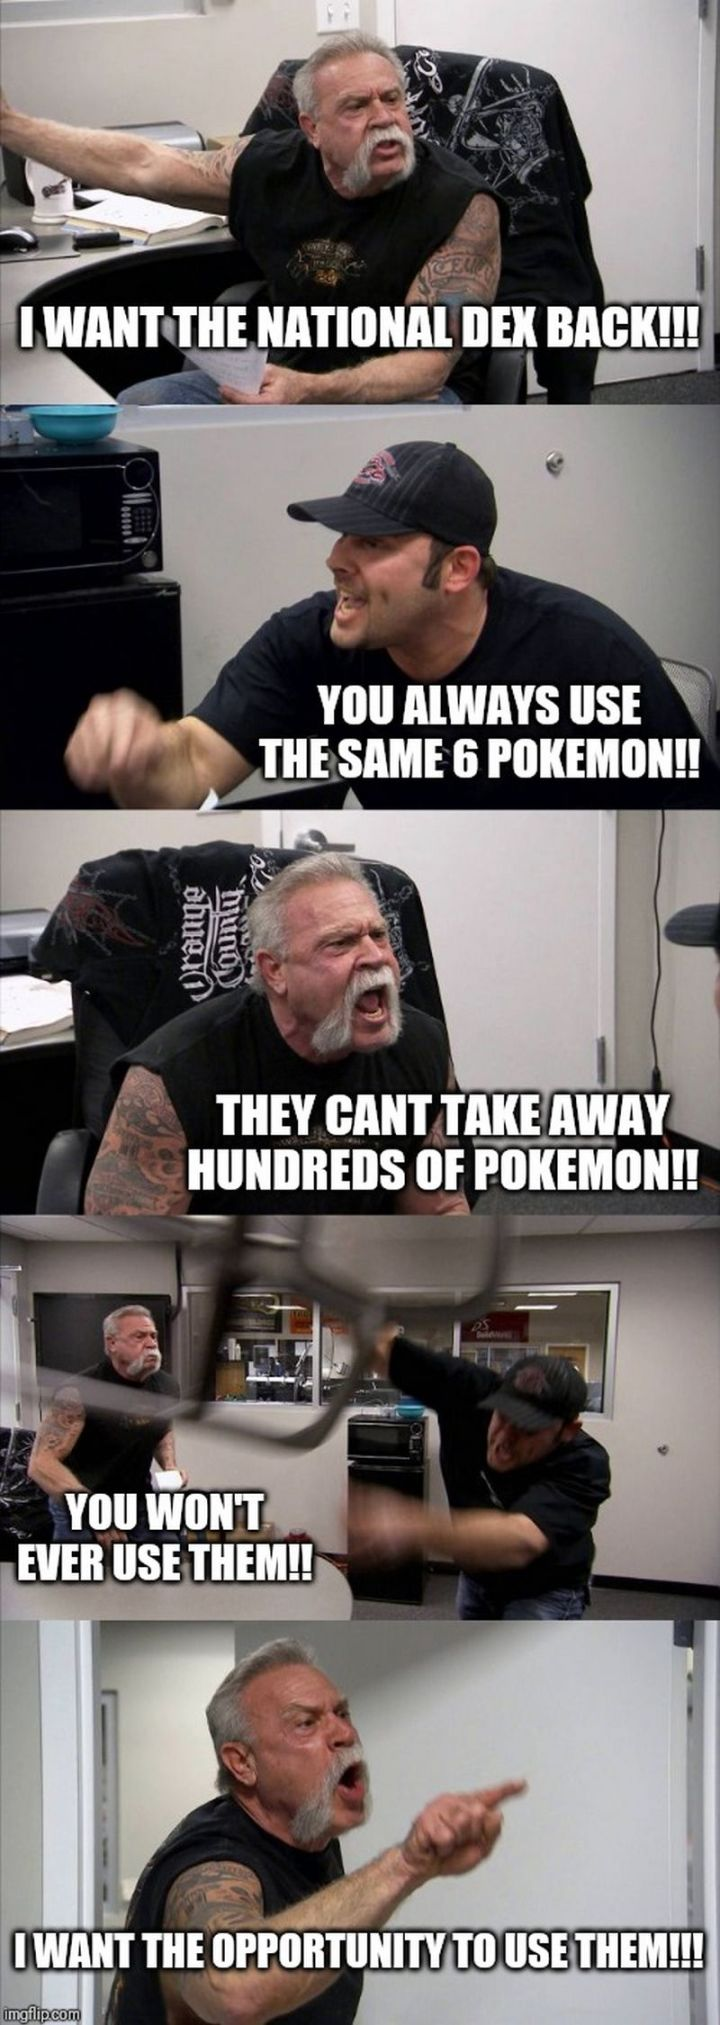 "71 Pokémon memes - ""I want the national dex back!!! You always use the same 6 Pokémon!! They can't take away hundreds of Pokémon!! You won't ever use them!! I want the opportunity to use them!!!"""